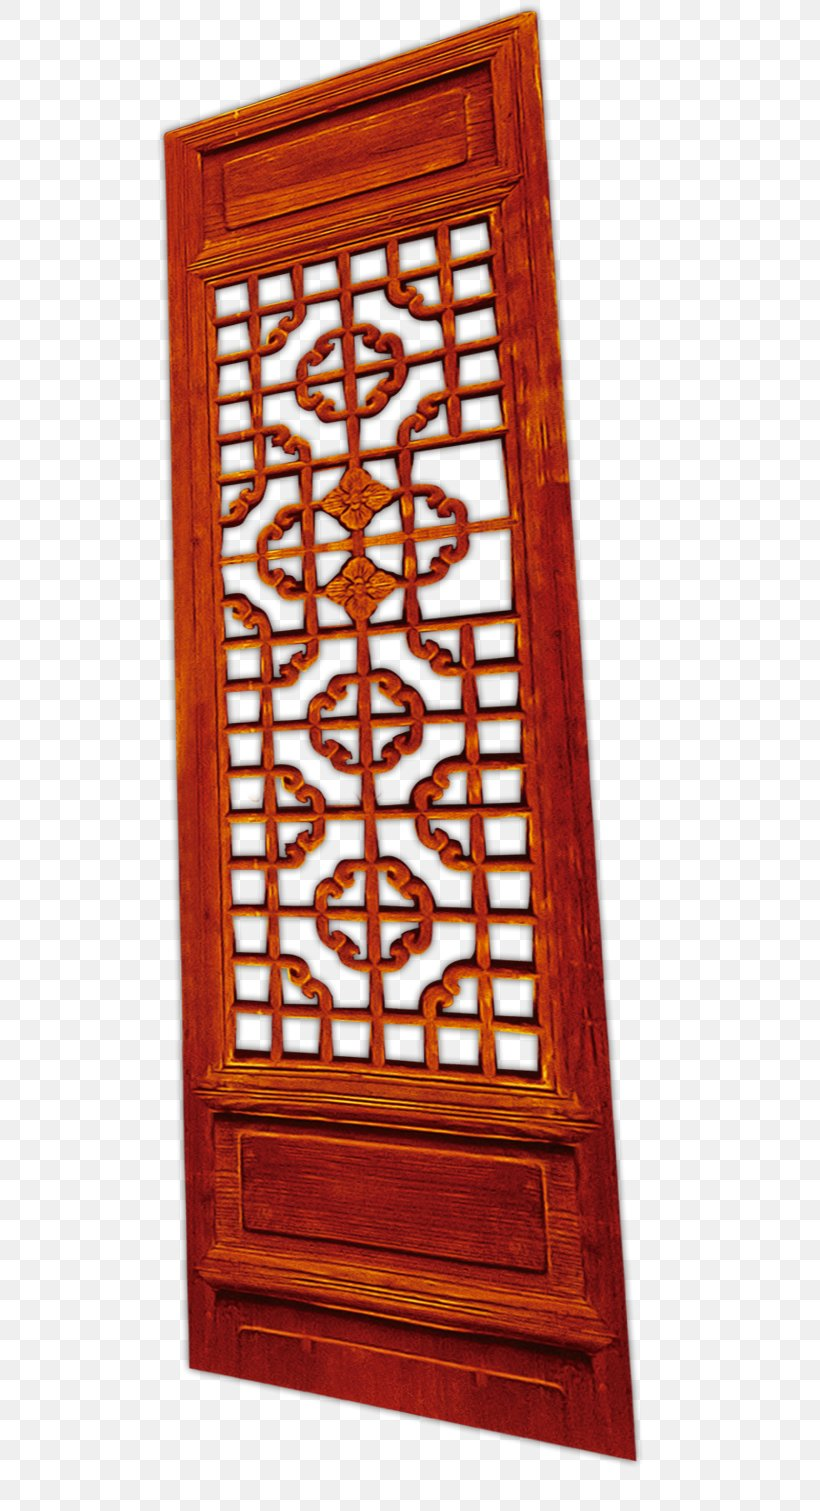 Window, PNG, 596x1511px, Window, Door, Furniture, Hardwood, Rectangle Download Free